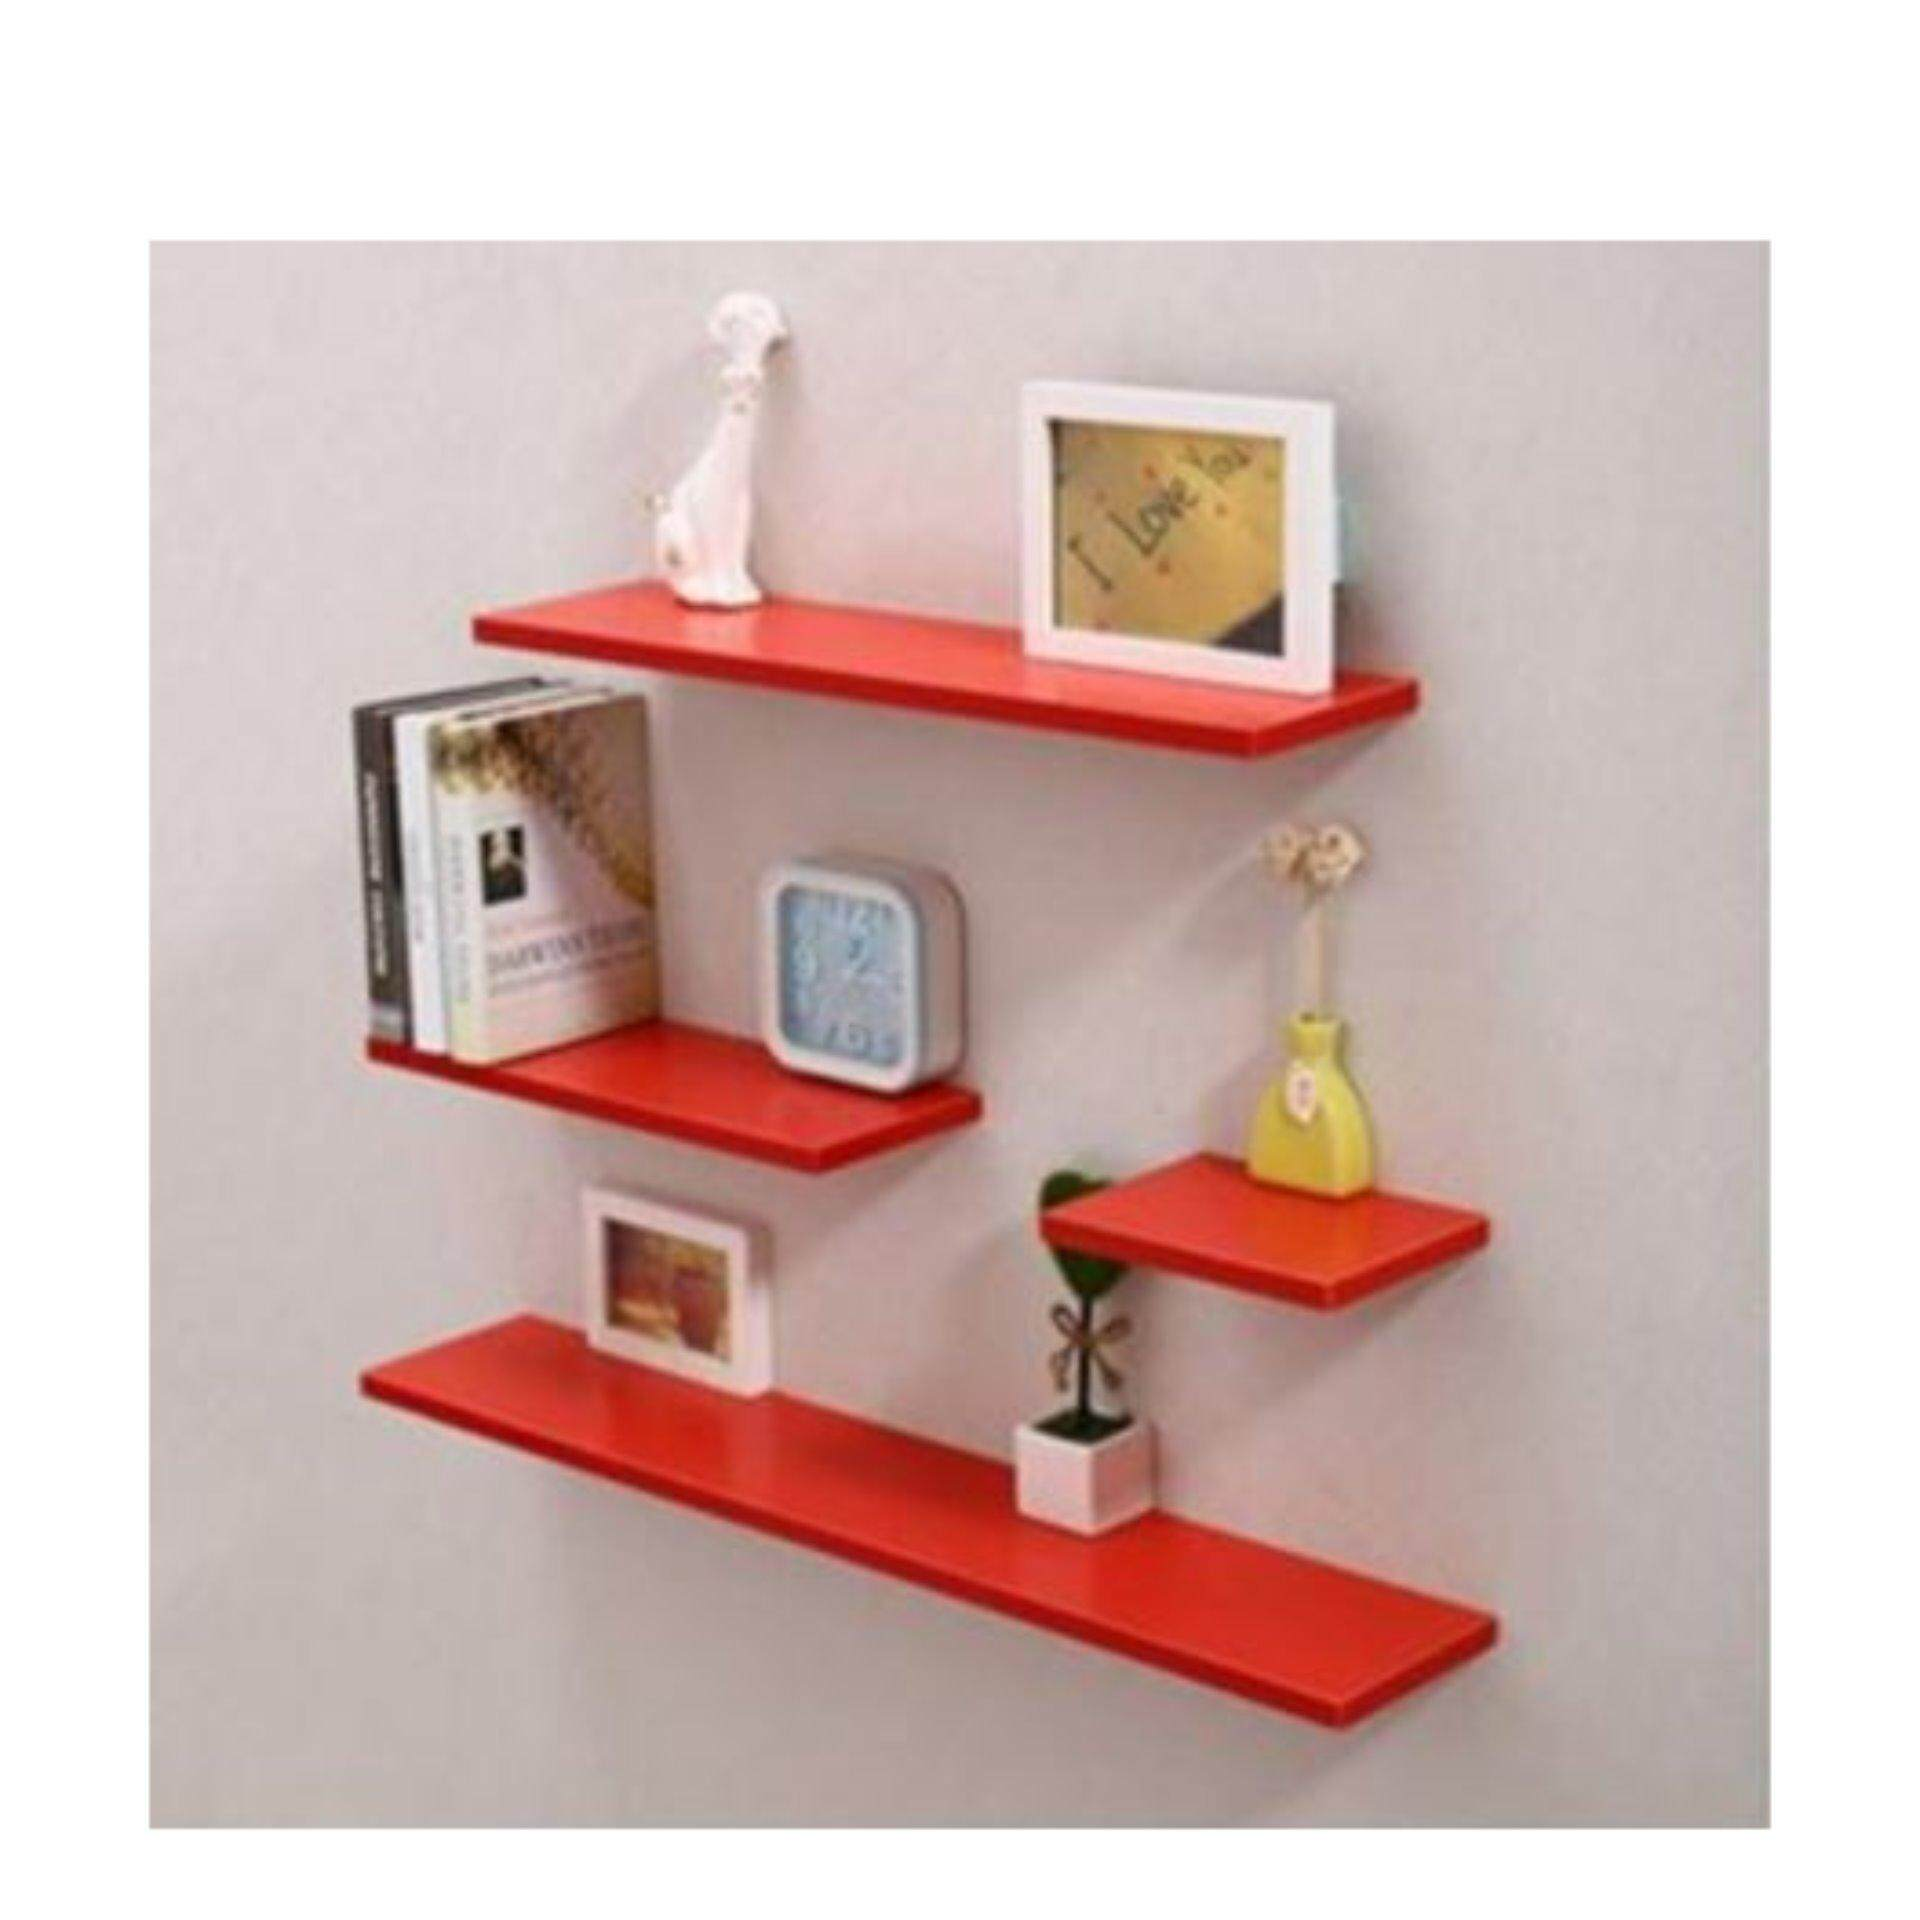 Set of 4 Horizontal Shape Wall Mounted Shelves Design A Red